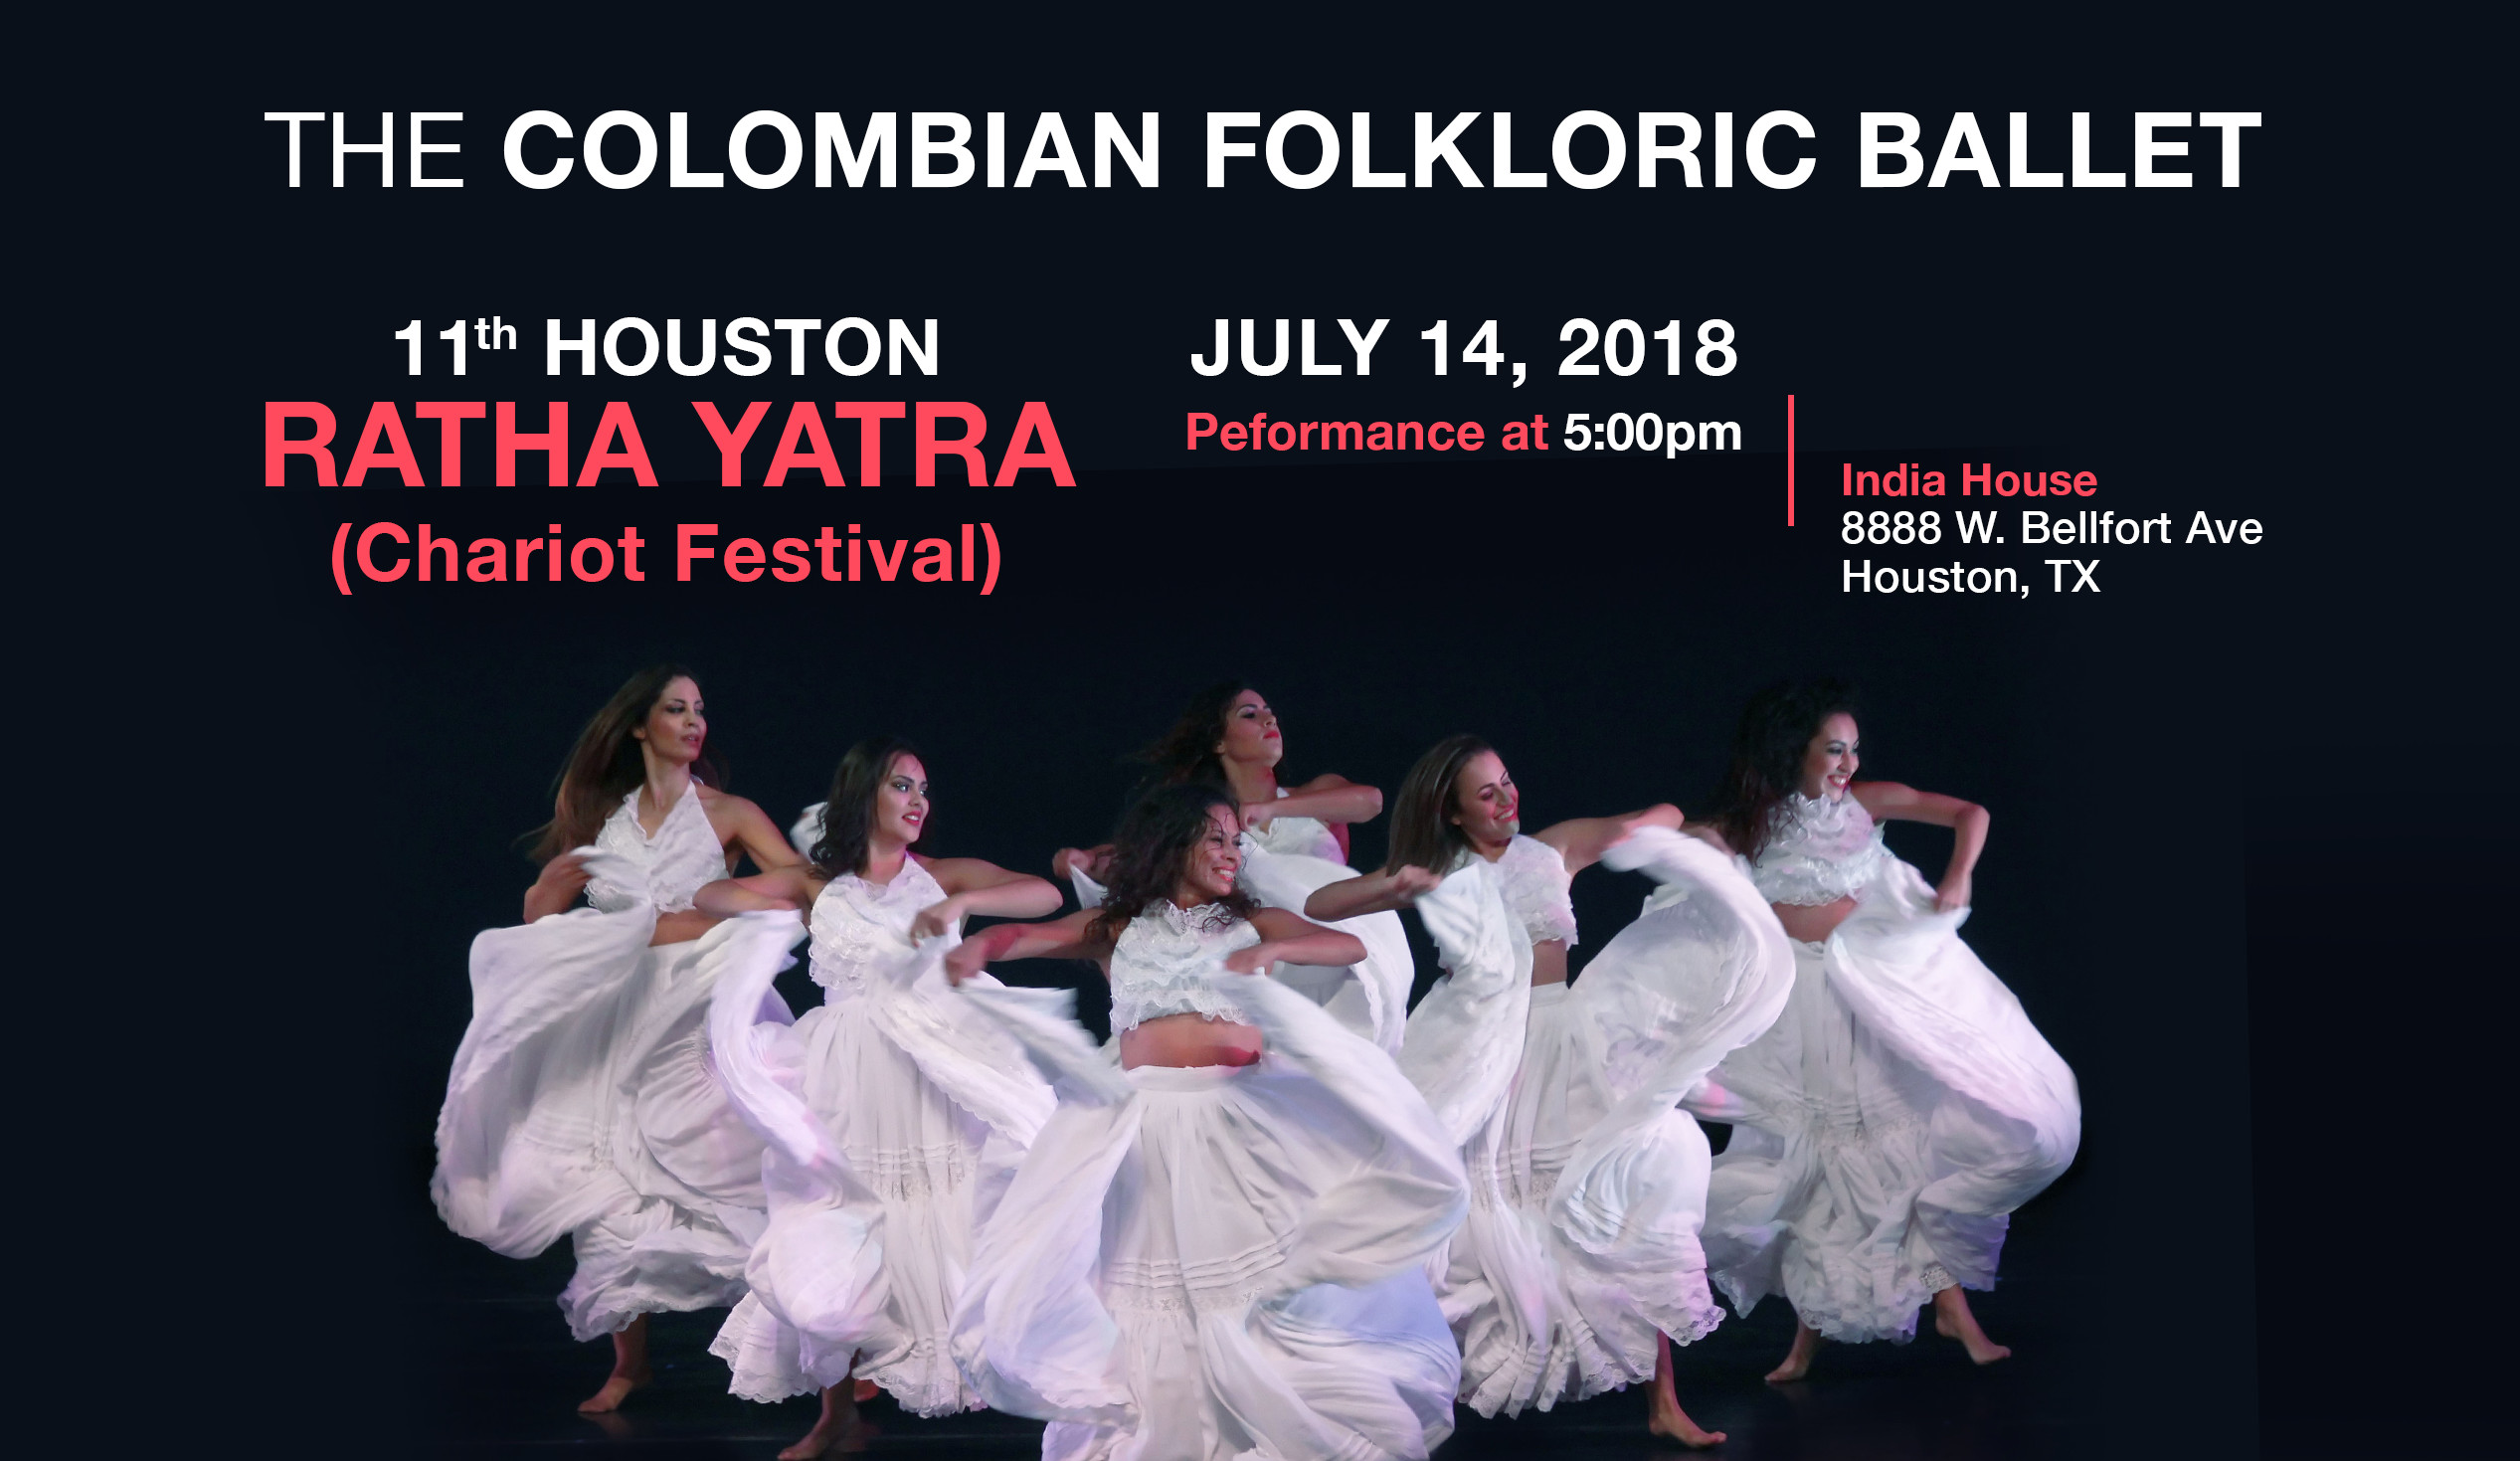 The Colombian Folkloric Ballet—11th Houston Ratha Yatra (Chariot Festival) 2018